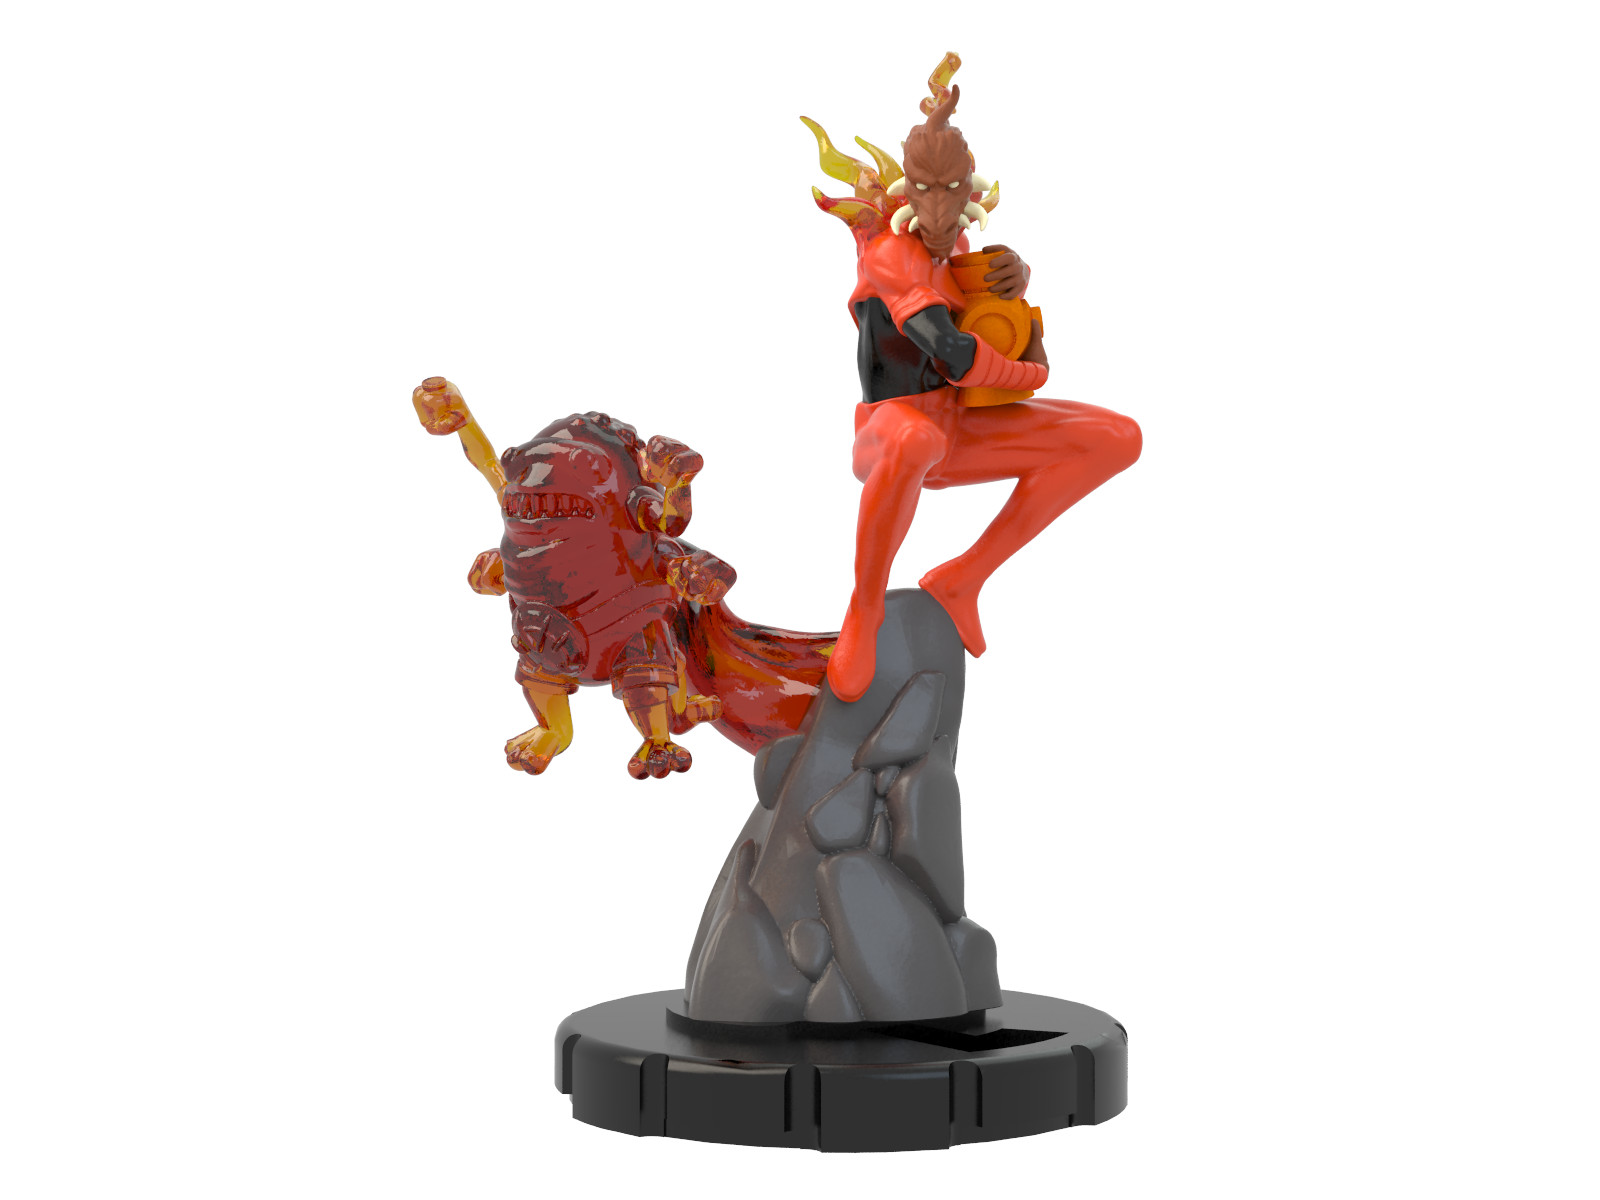 Ben misenar 043 larfleeze rc 1